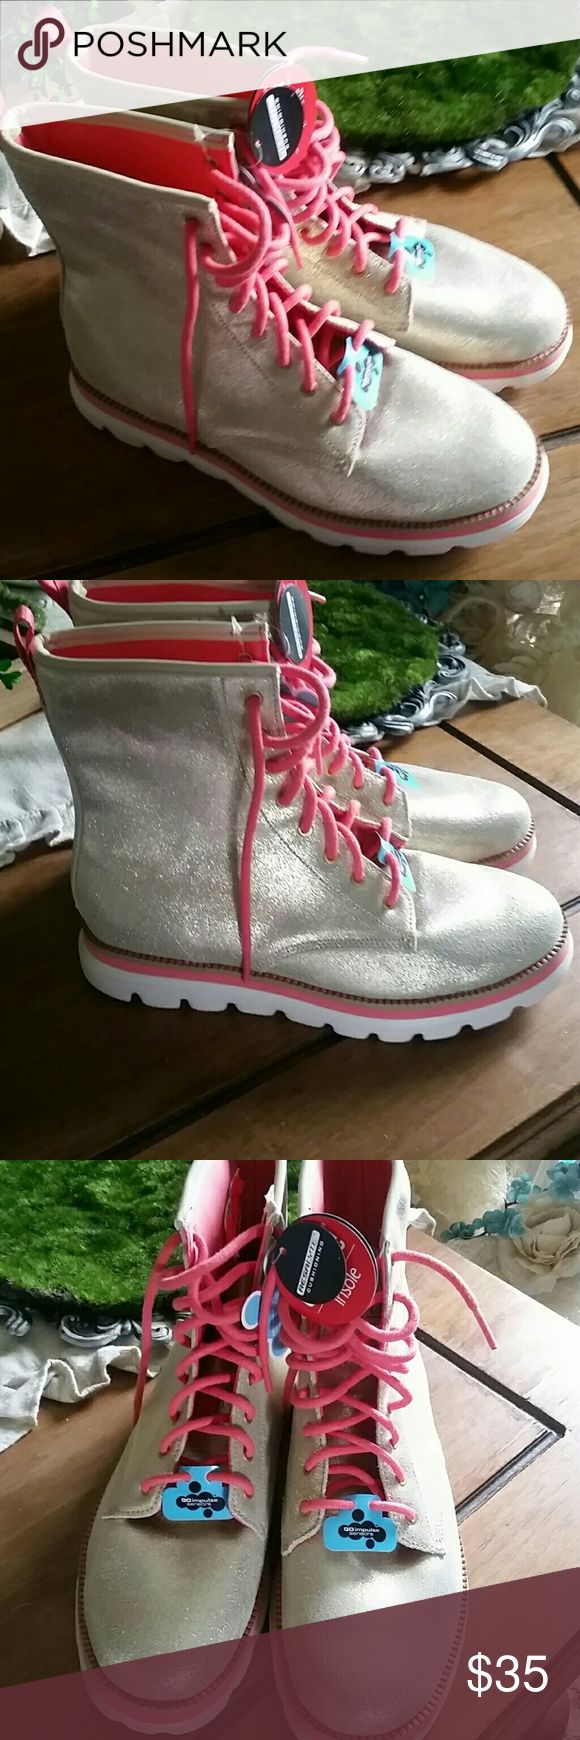 Skechers boots The Sketcher boots are made of leather in a gold color trimmed in a pink salmon color they are brand-new without the Box never worn Skechers Shoes Ankle Boots & Booties